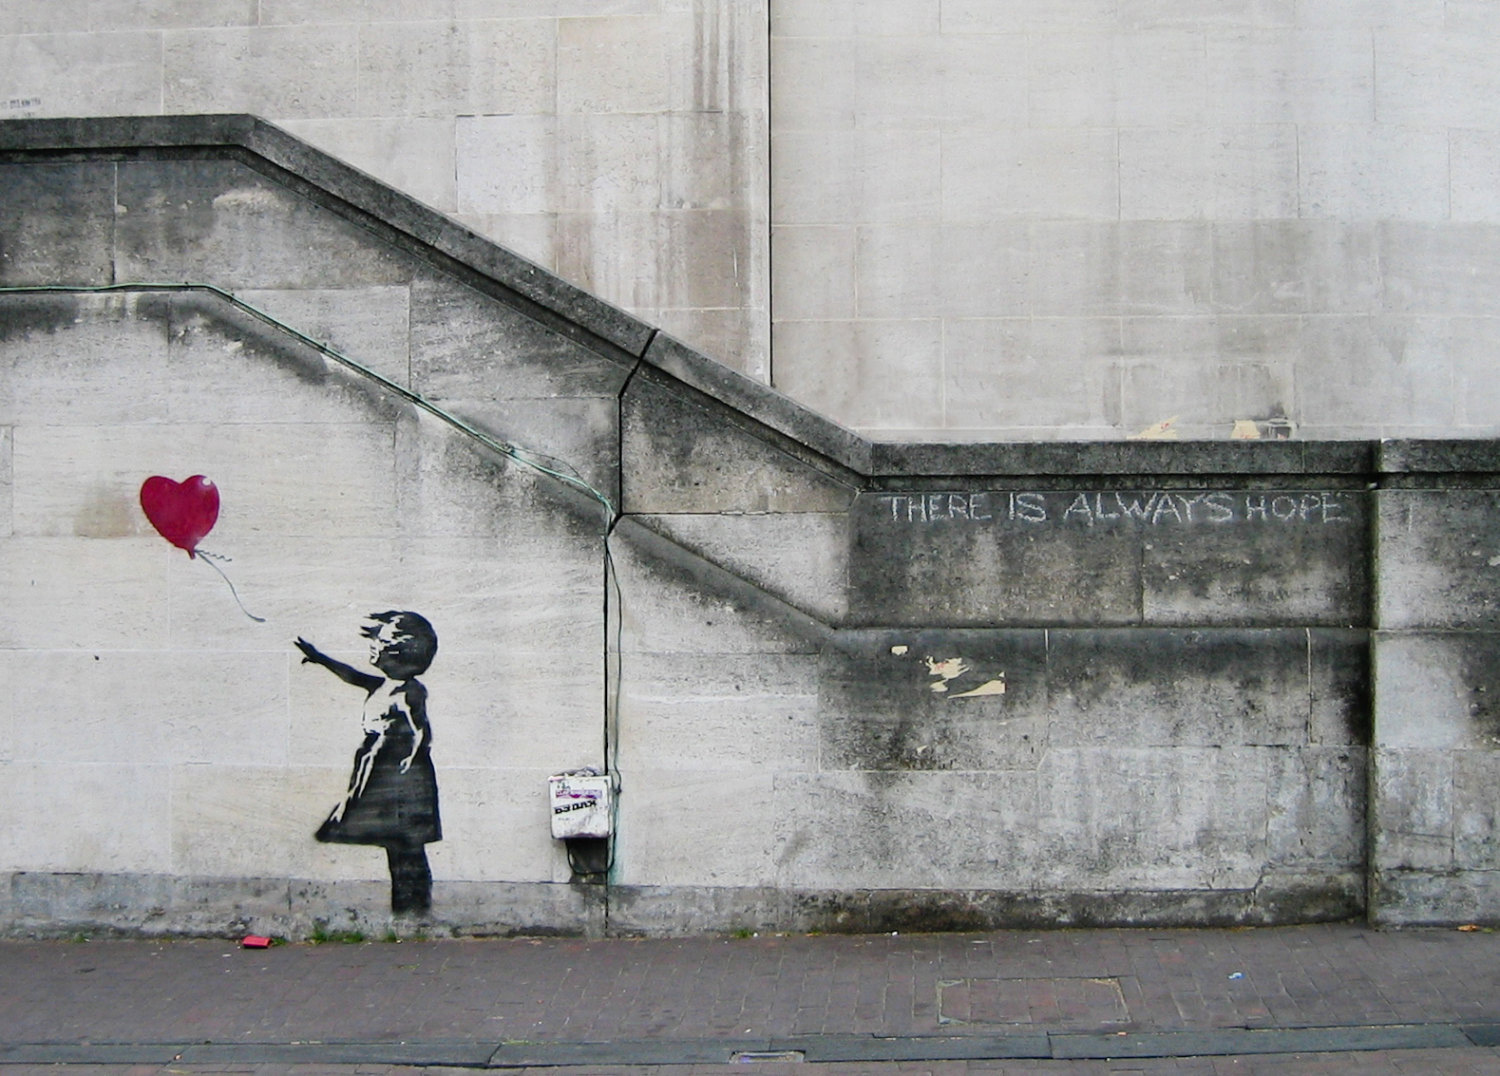 print of graffiti art by Banksy